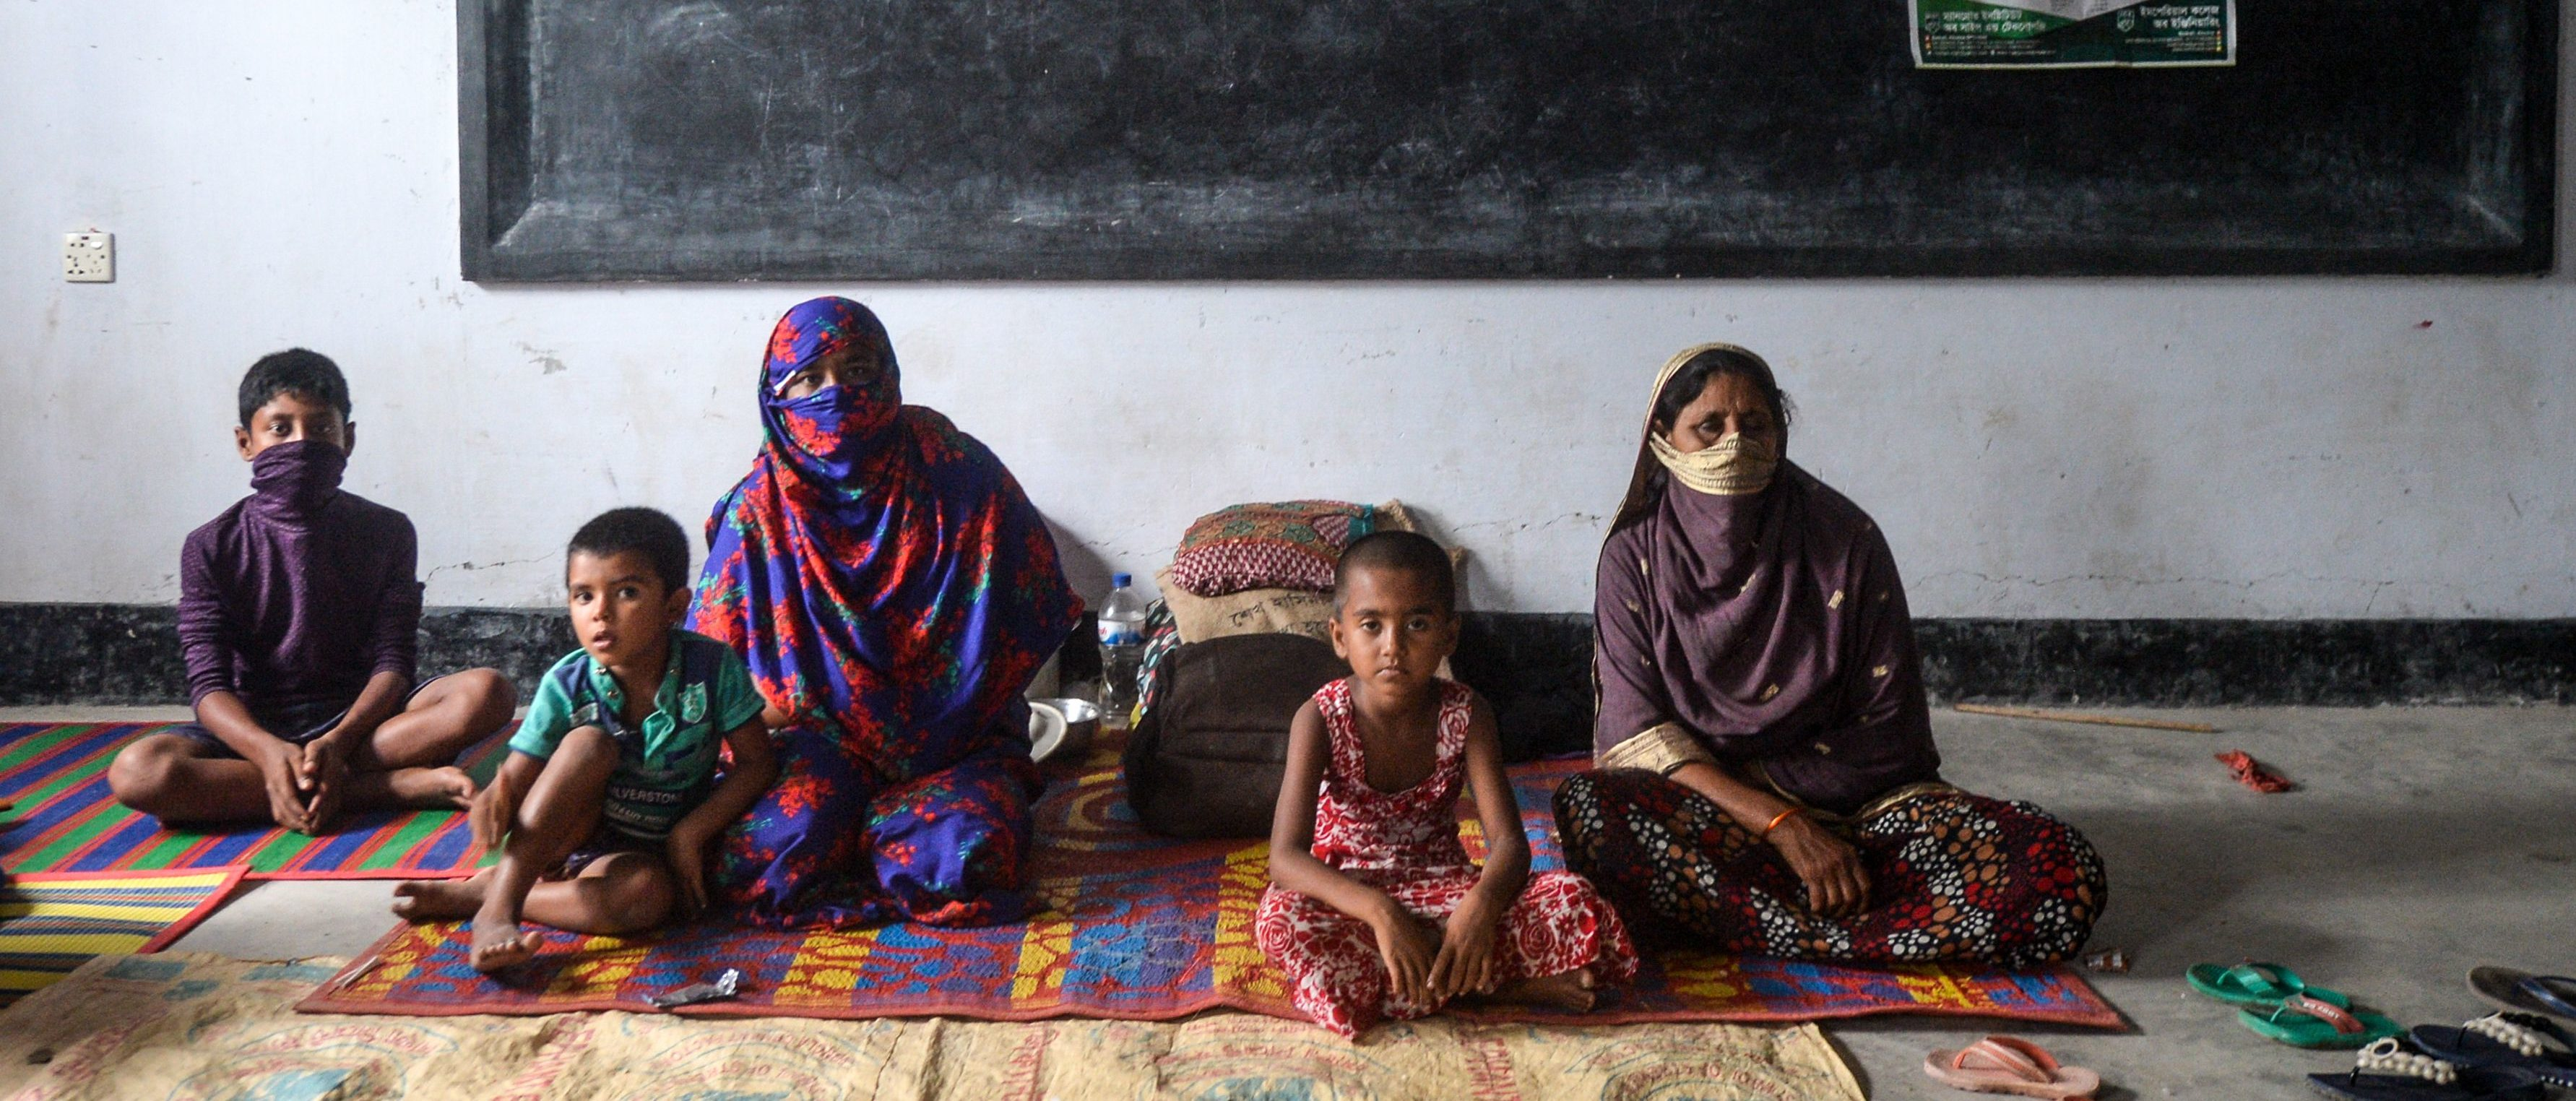 Residents rest in a shelter ahead of the expected landfall of cyclone Amphan in Dacope of Khulna district on May 20, 2020. - Several million people were taking shelter and praying for the best on Wednesday as the Bay of Bengal's fiercest cyclone in decades roared towards Bangladesh and eastern India, with forecasts of a potentially devastating and deadly storm surge. Authorities have scrambled to evacuate low lying areas in the path of Amphan, which is only the second